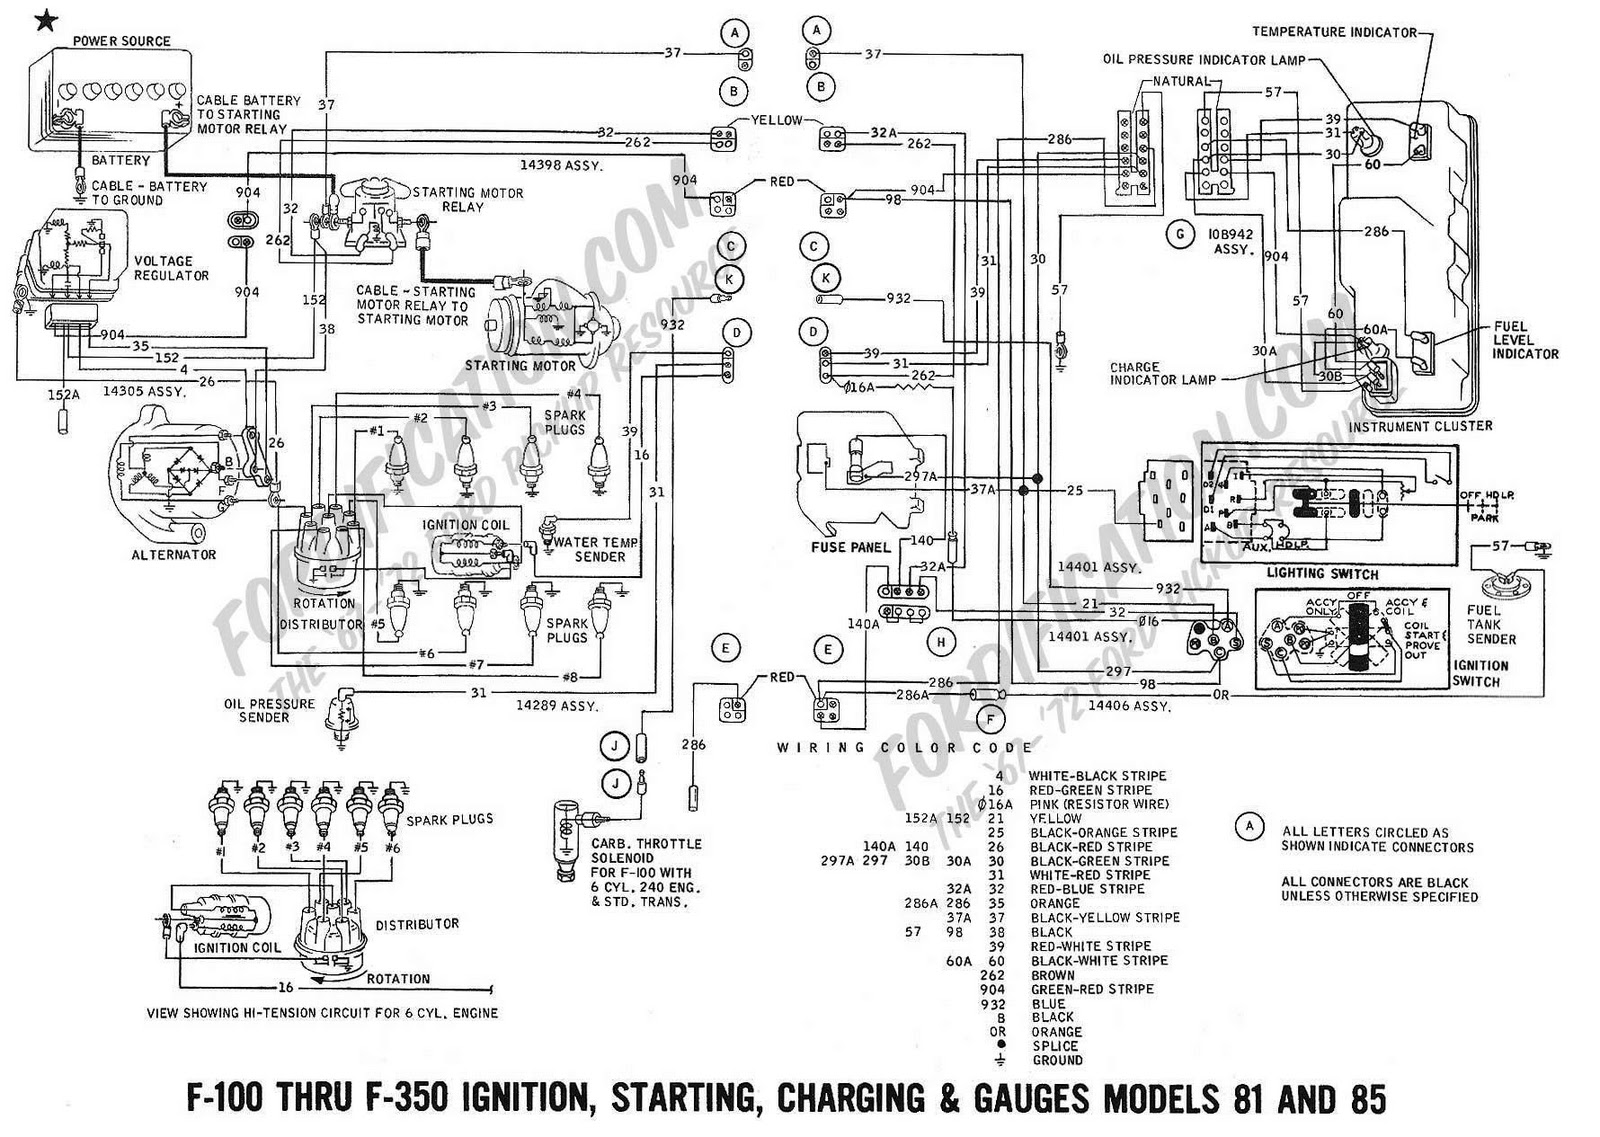 1965 Ford Starter Wiring Diagram Data Chevy Steering Column Ignition Switch Pinto Motor